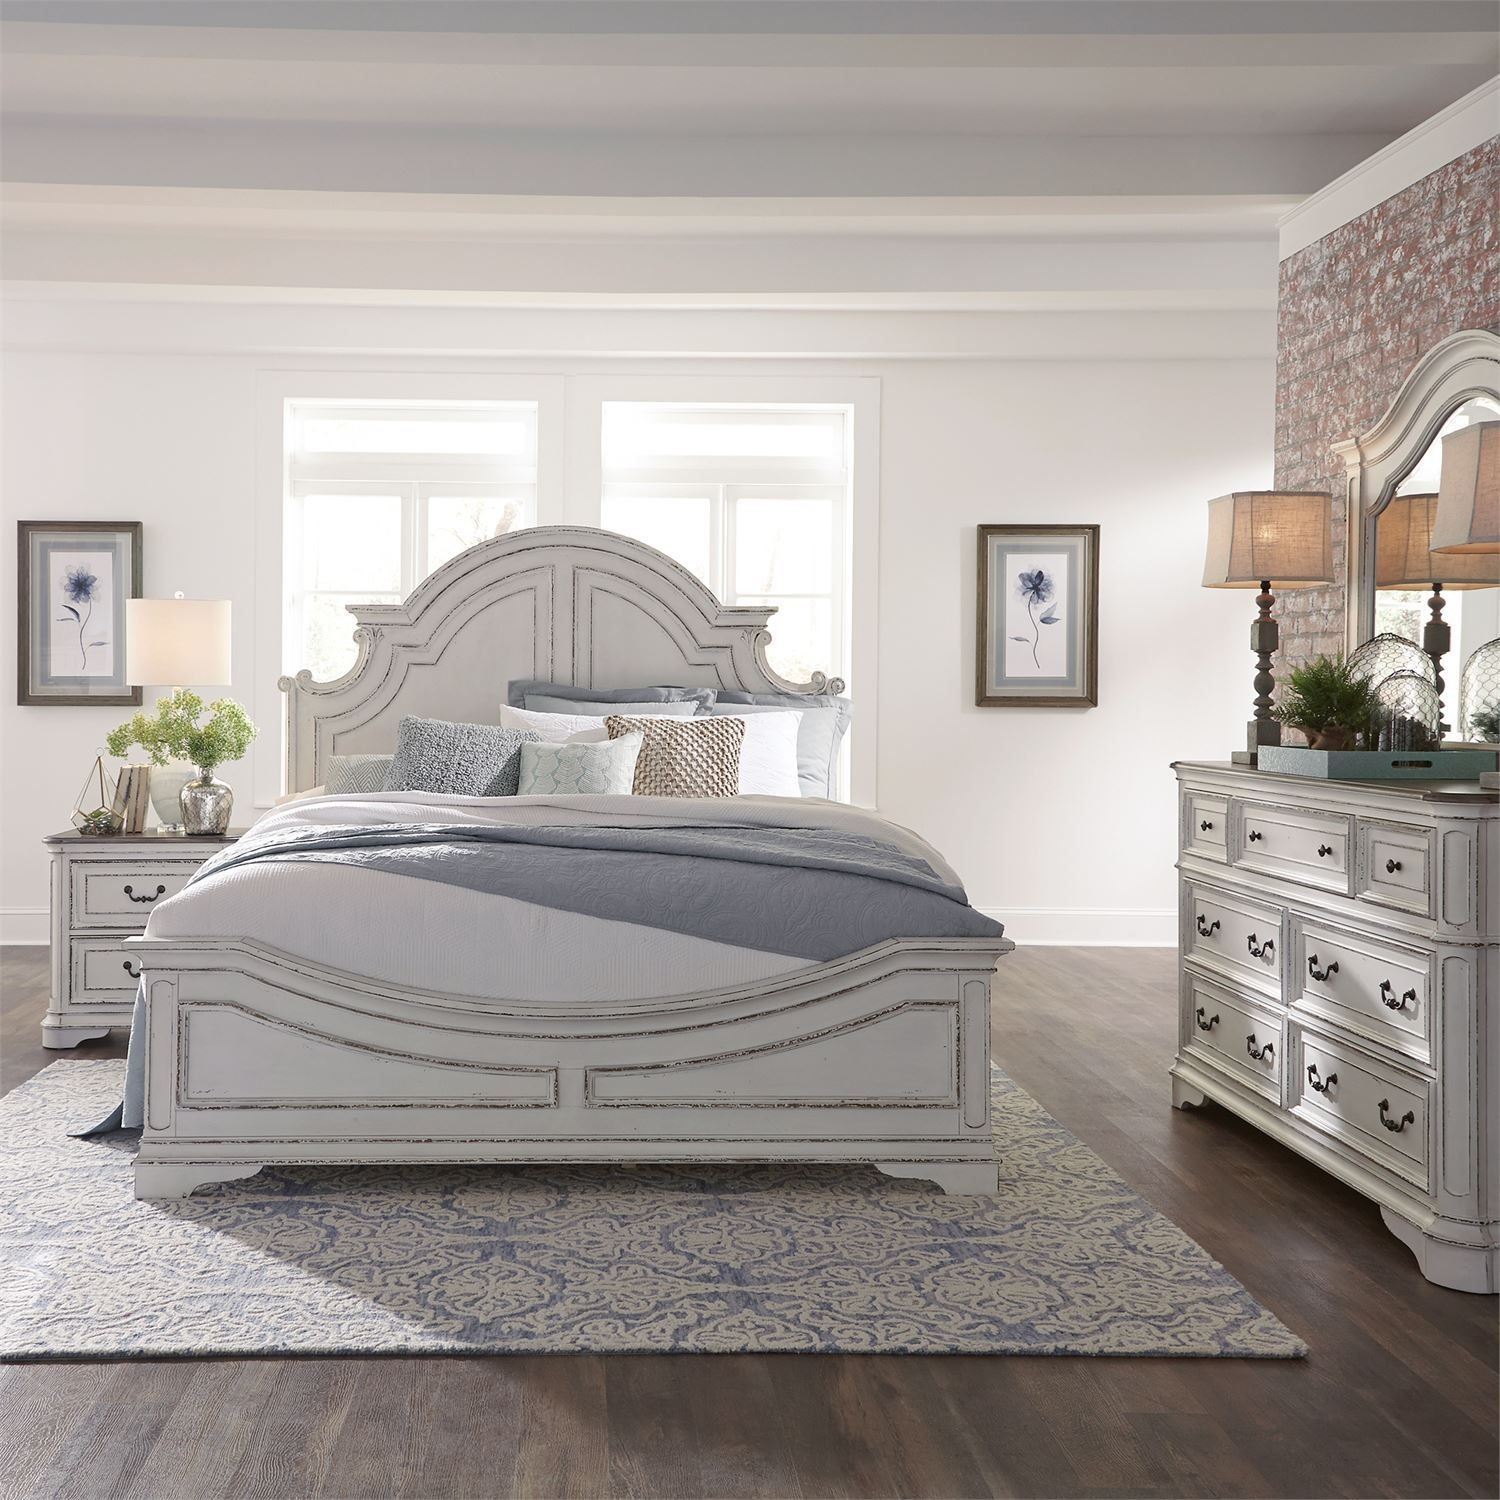 Magnolia manor antique white panel bedroom set - White vintage bedroom furniture sets ...